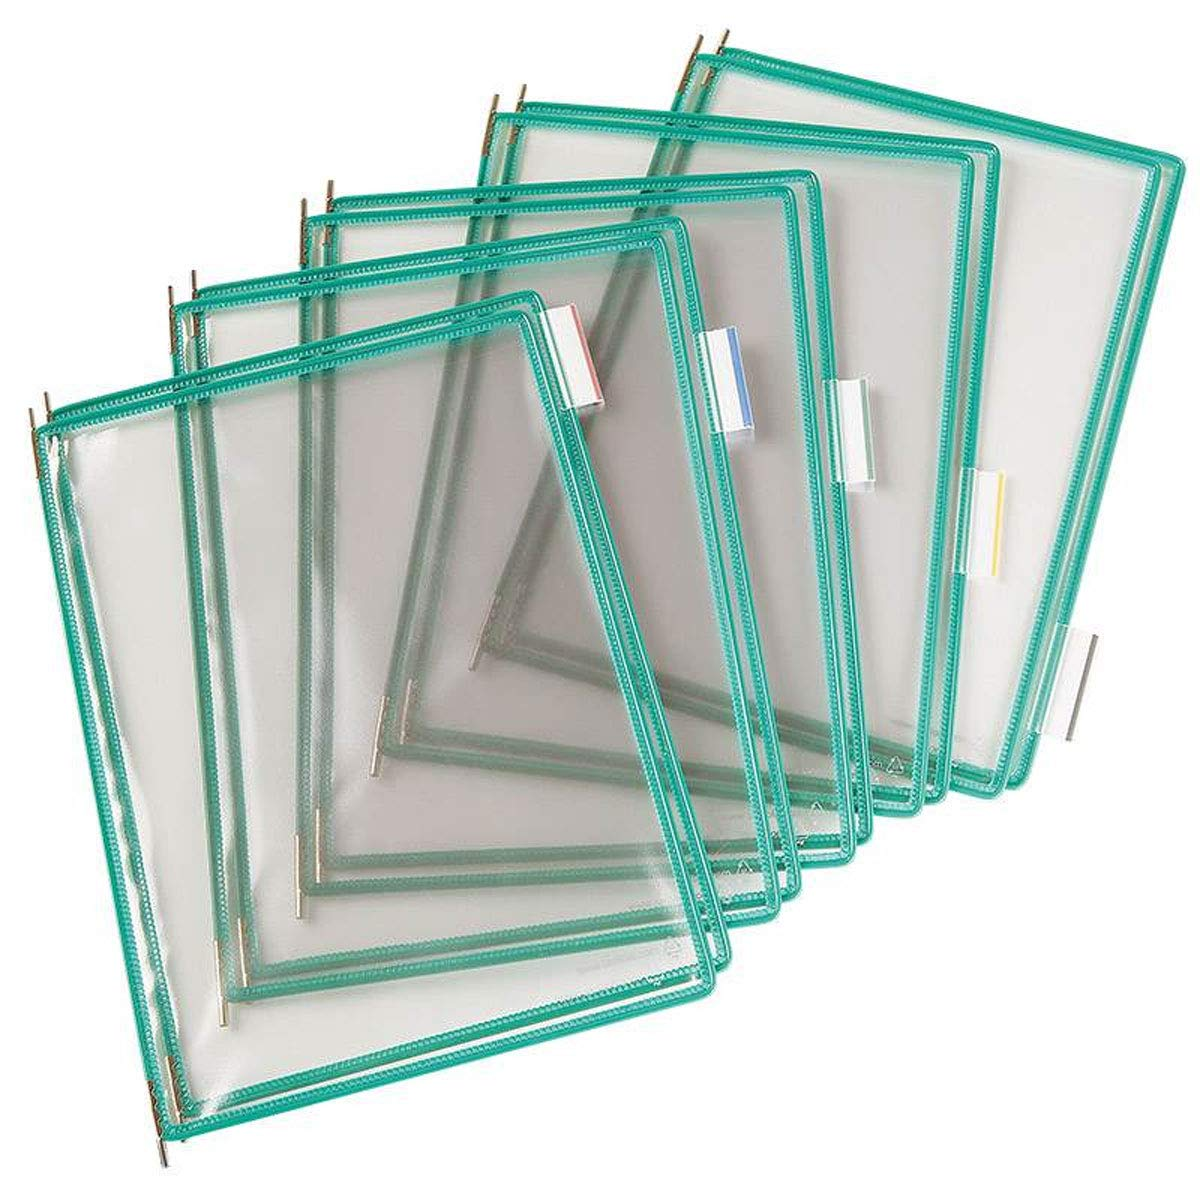 Tarifold P050 Pivoting Pockets for Wall, Desk or Rotary Systems, Green, 10/Pack by TARIFOLD